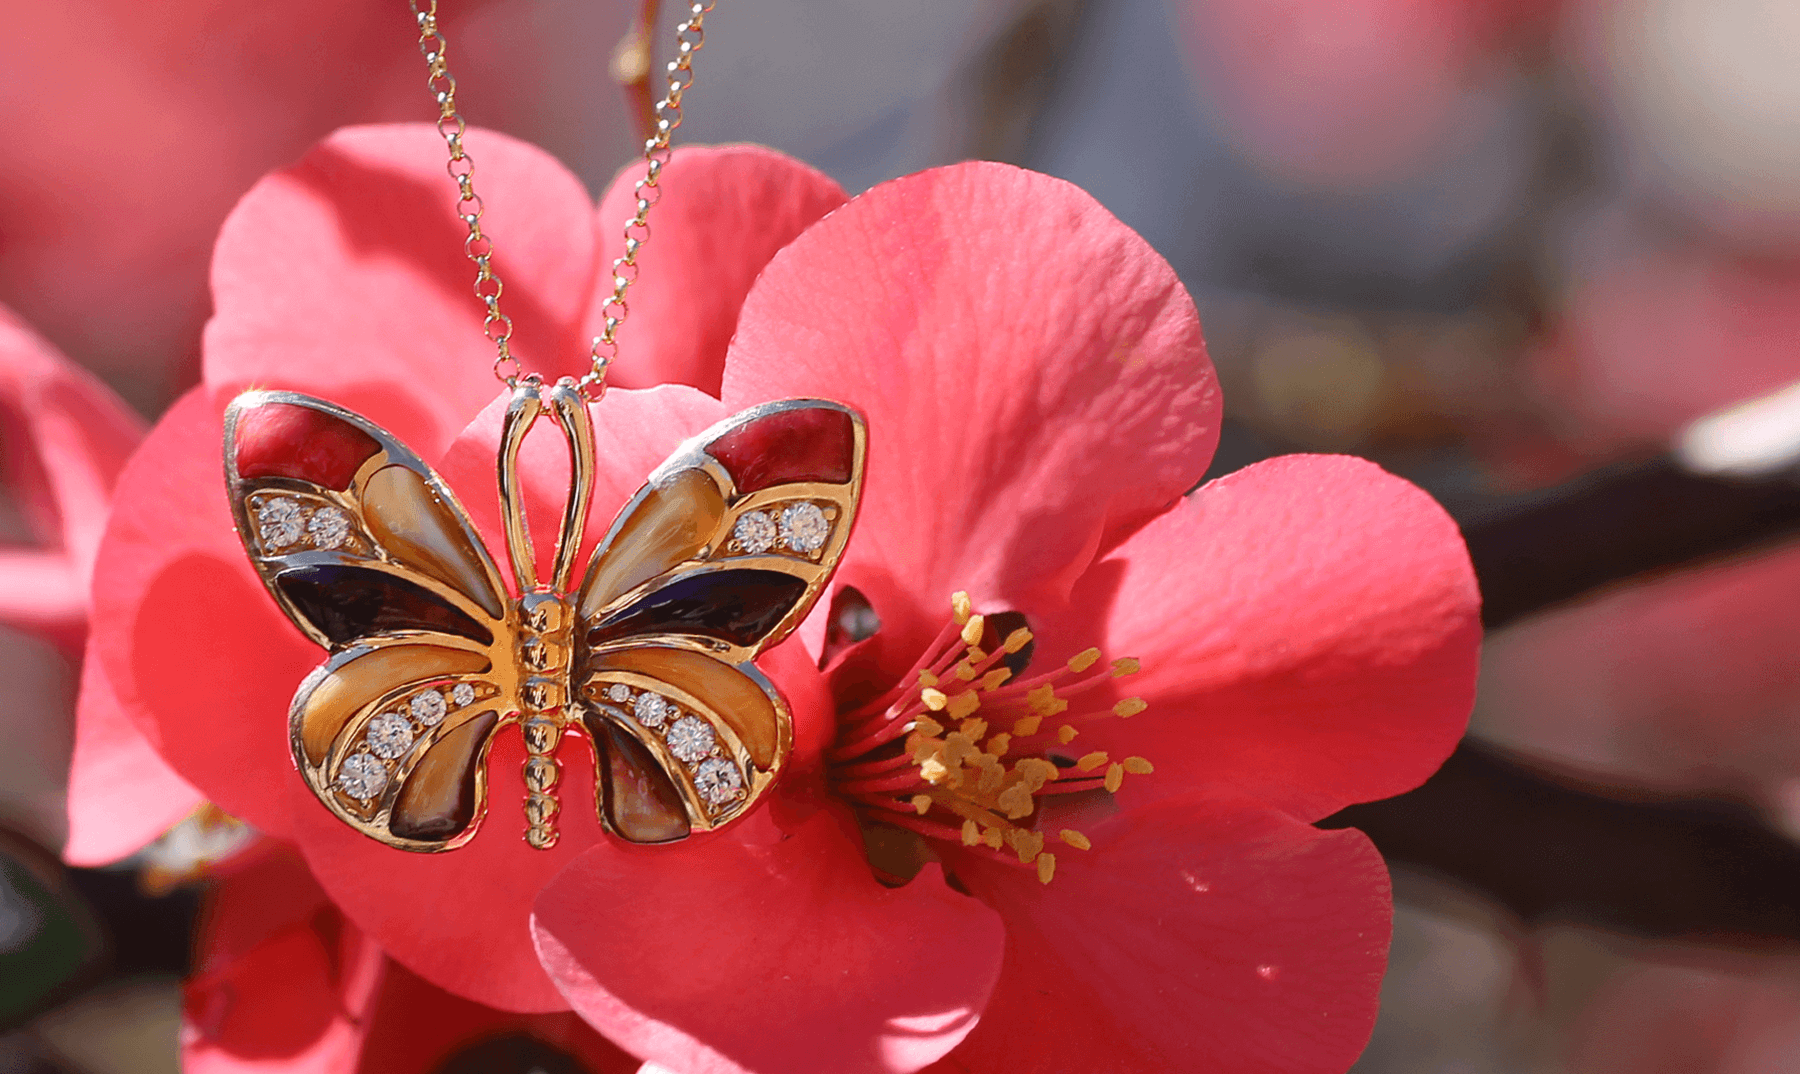 14kt yellow gold butterfly pendant with spiny oyster and mother of pearl inlay